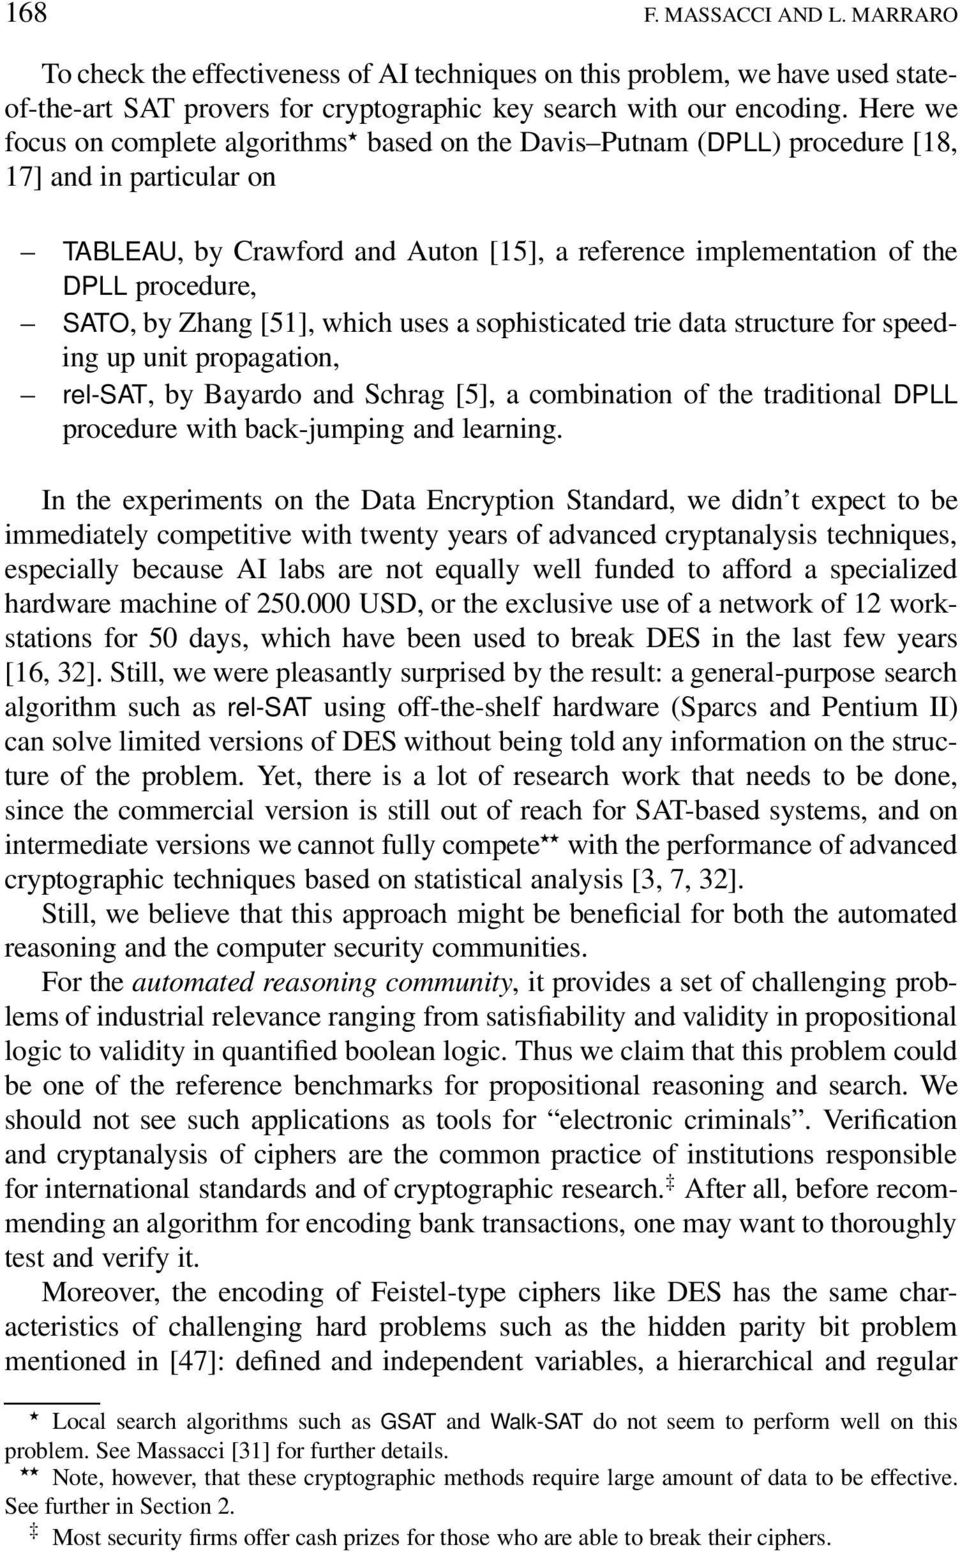 SATO, by Zhang [51], which uses a sophisticated trie data structure for speeding up unit propagation, rel-sat, by Bayardo and Schrag [5], a combination of the traditional DPLL procedure with